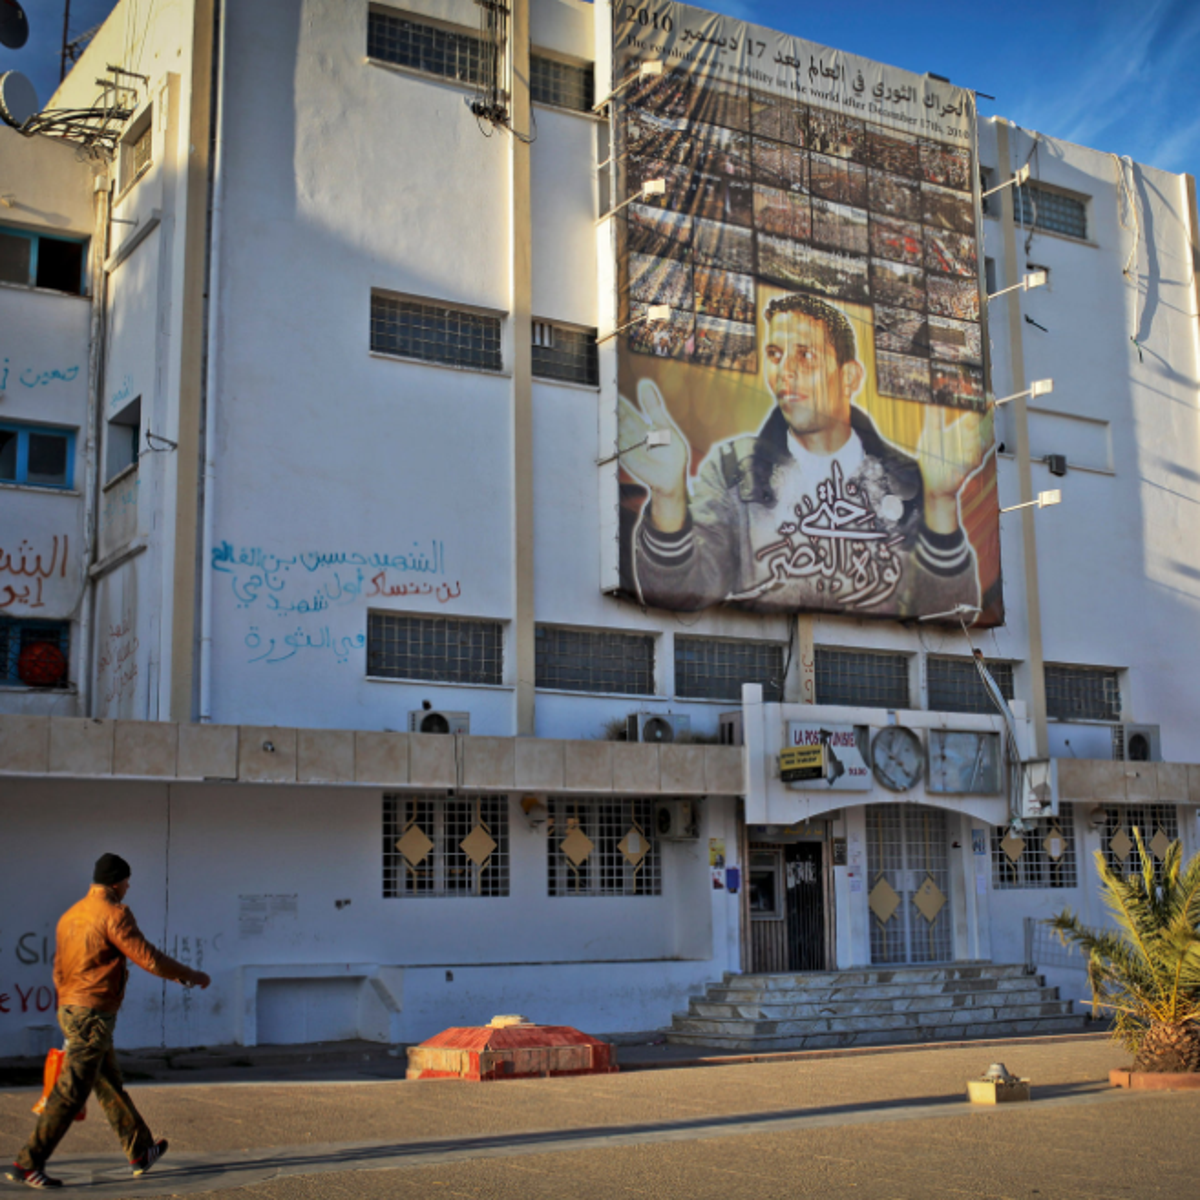 A poster of Mohamed Bouazizi, the fruit seller whose self-immolation set off the country's revolution in 2010, in Sidi Bouzid.